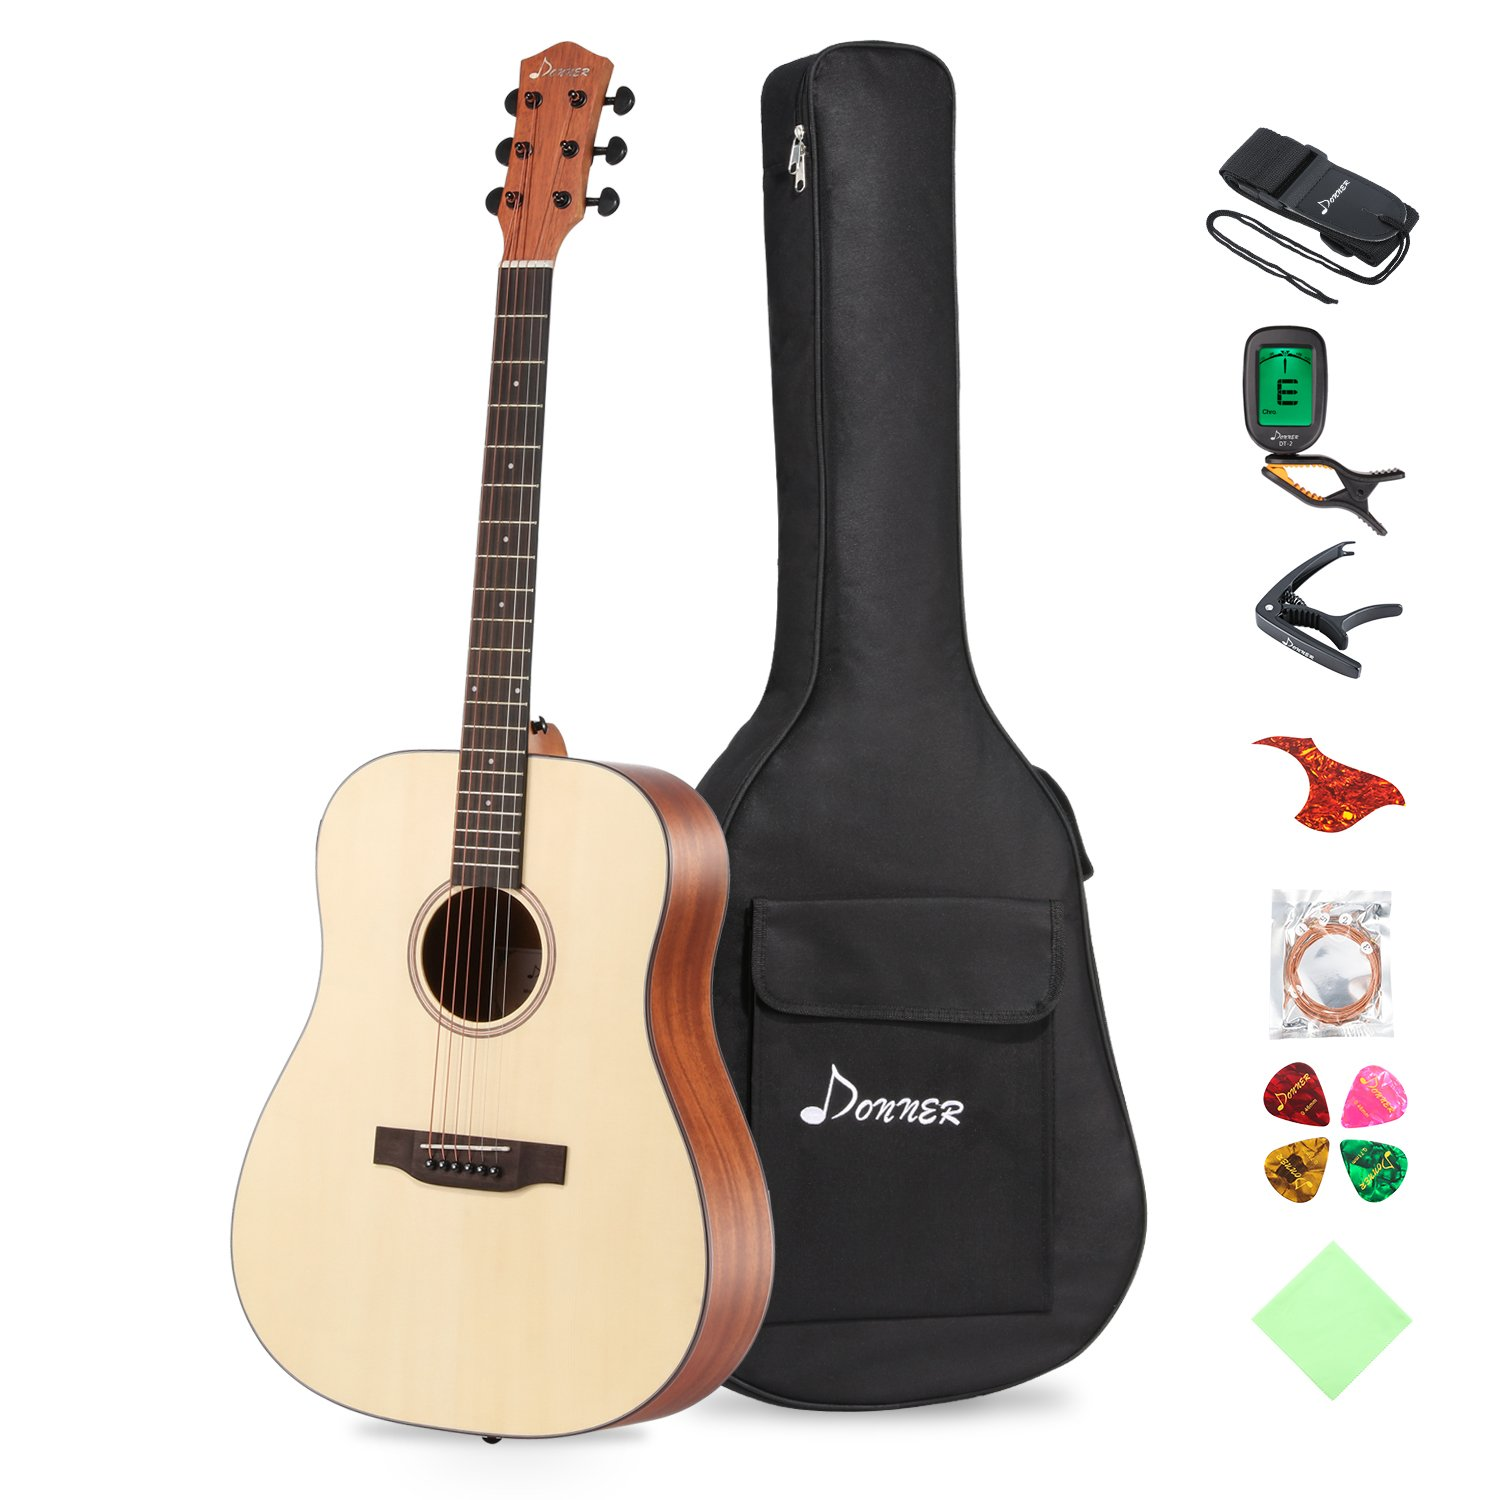 Donner DAG-1C Beginner Acoustic Guitar Full Size, 41 Cutaway Guitar Bundle with Gig Bag Tuner Capo Picks Strap String EC984